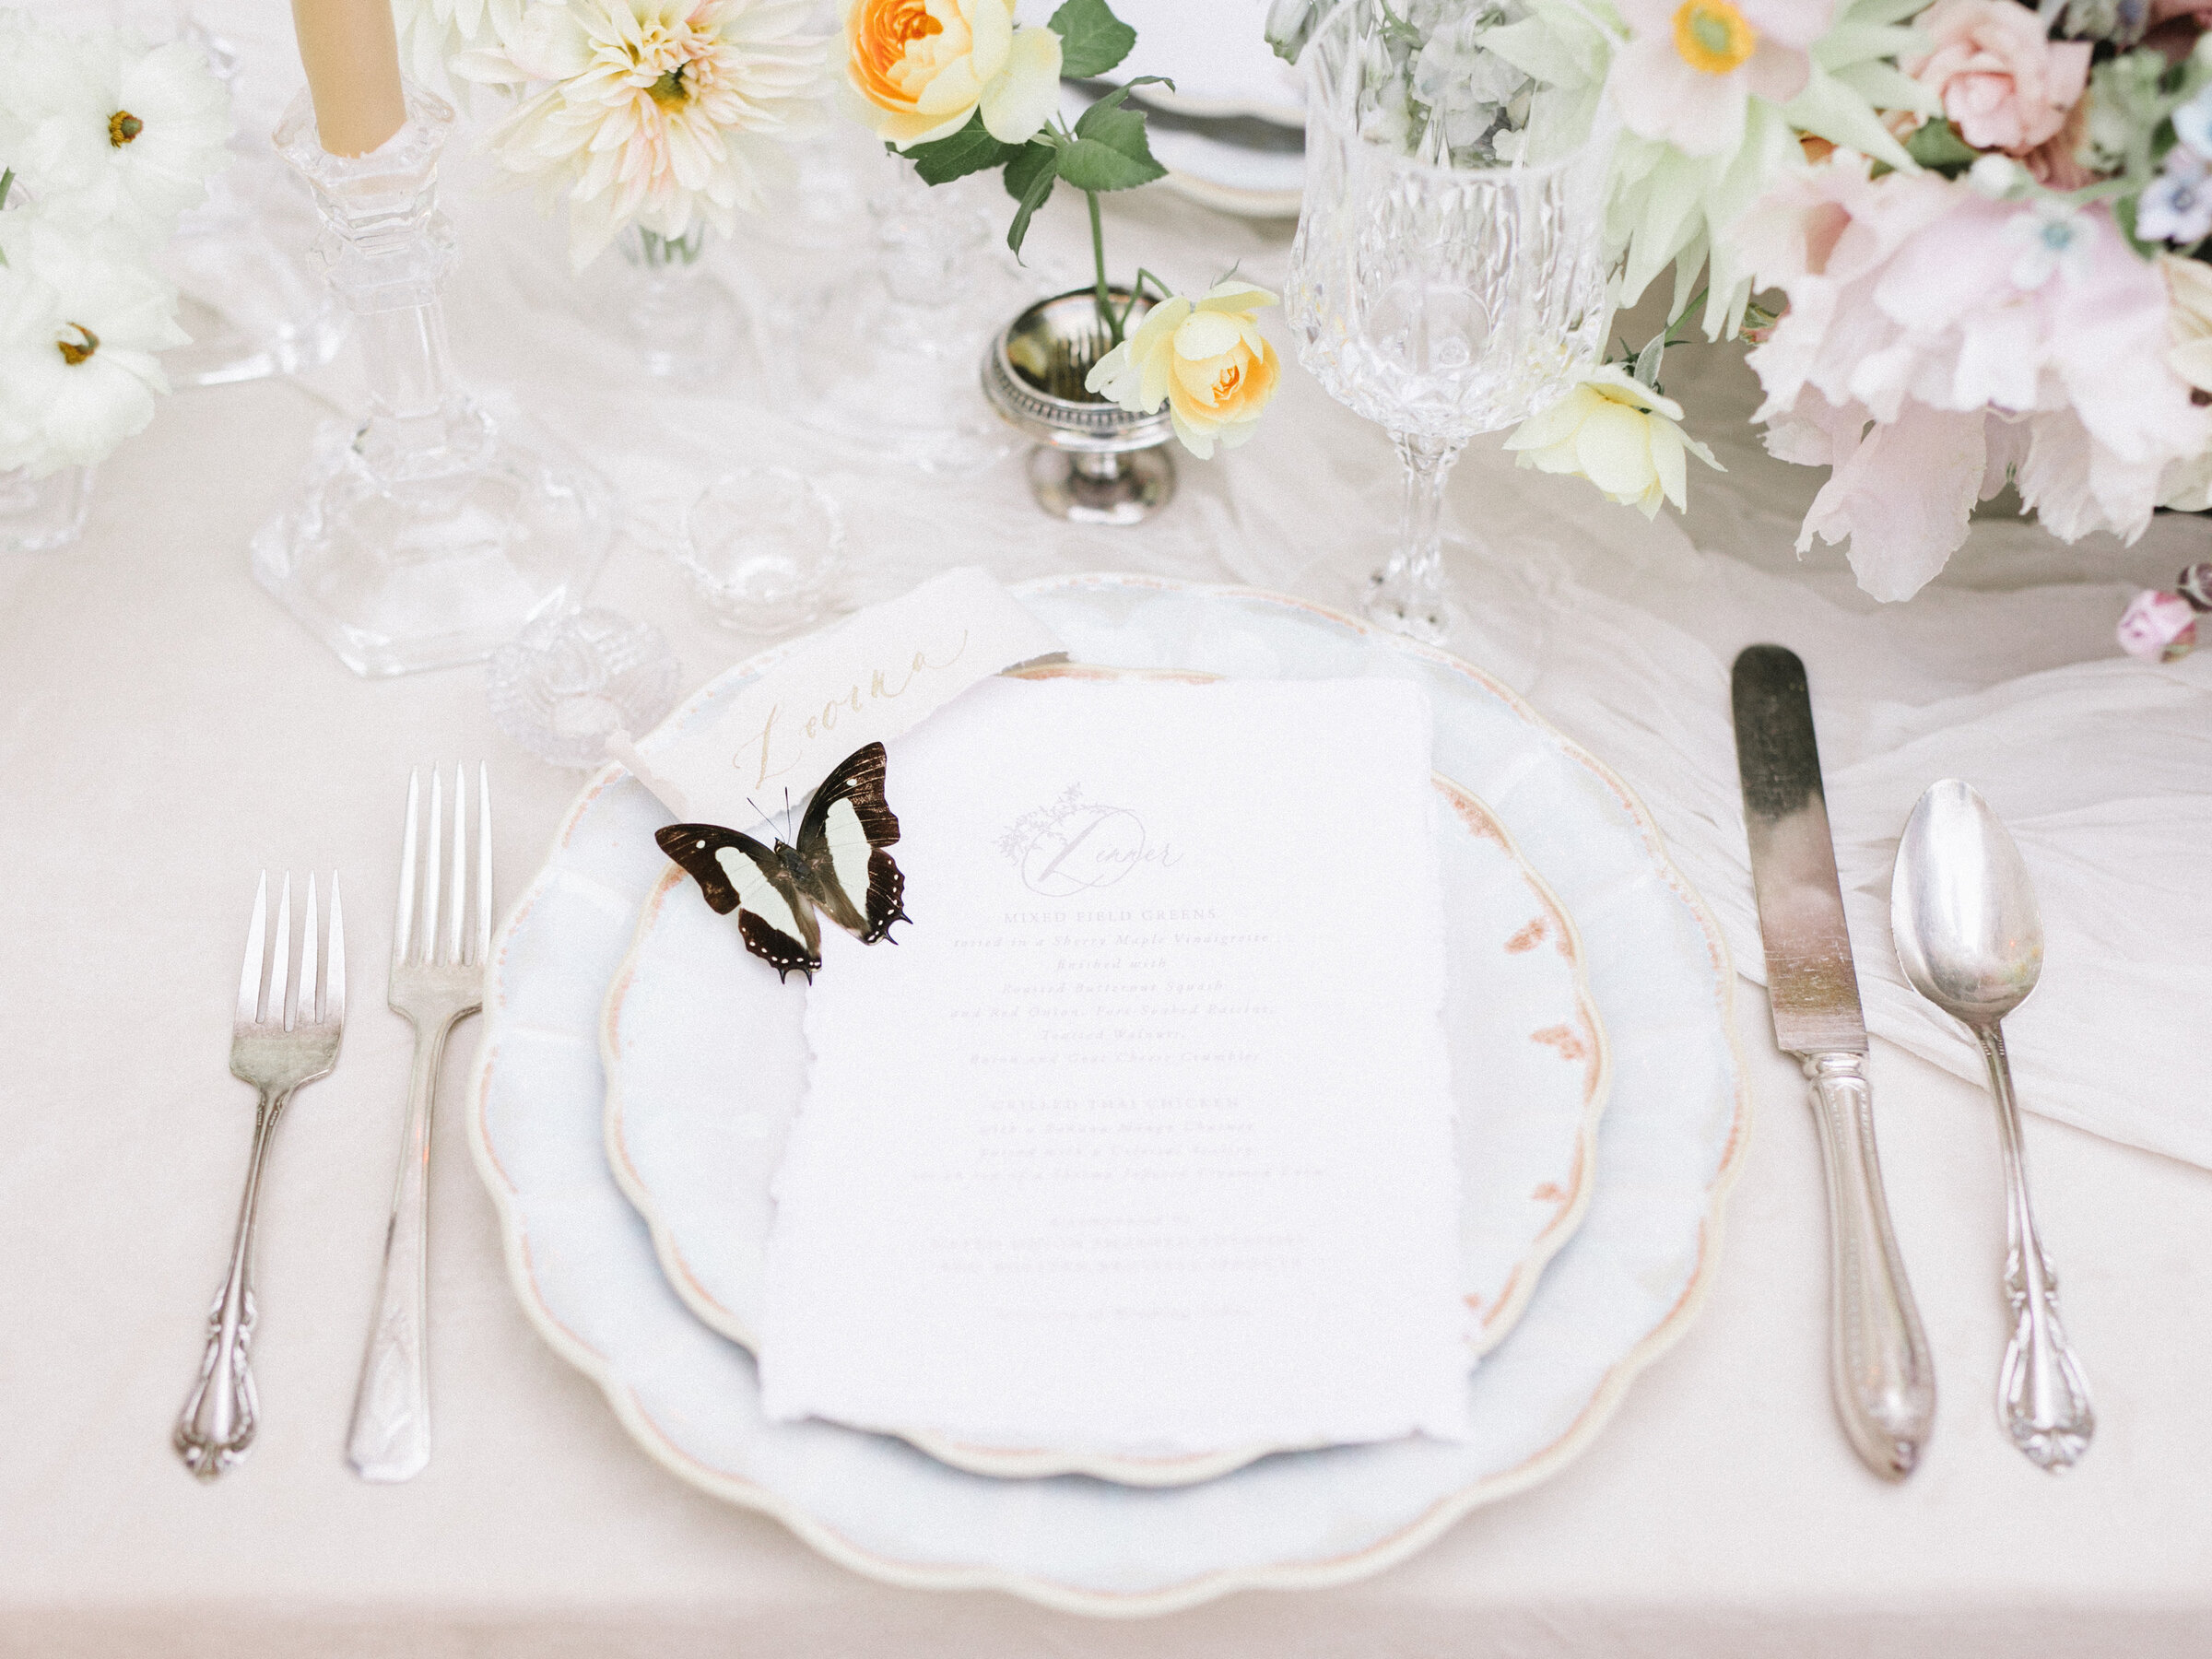 Swan House Wedding Place Setting in Atlanta, Georgia